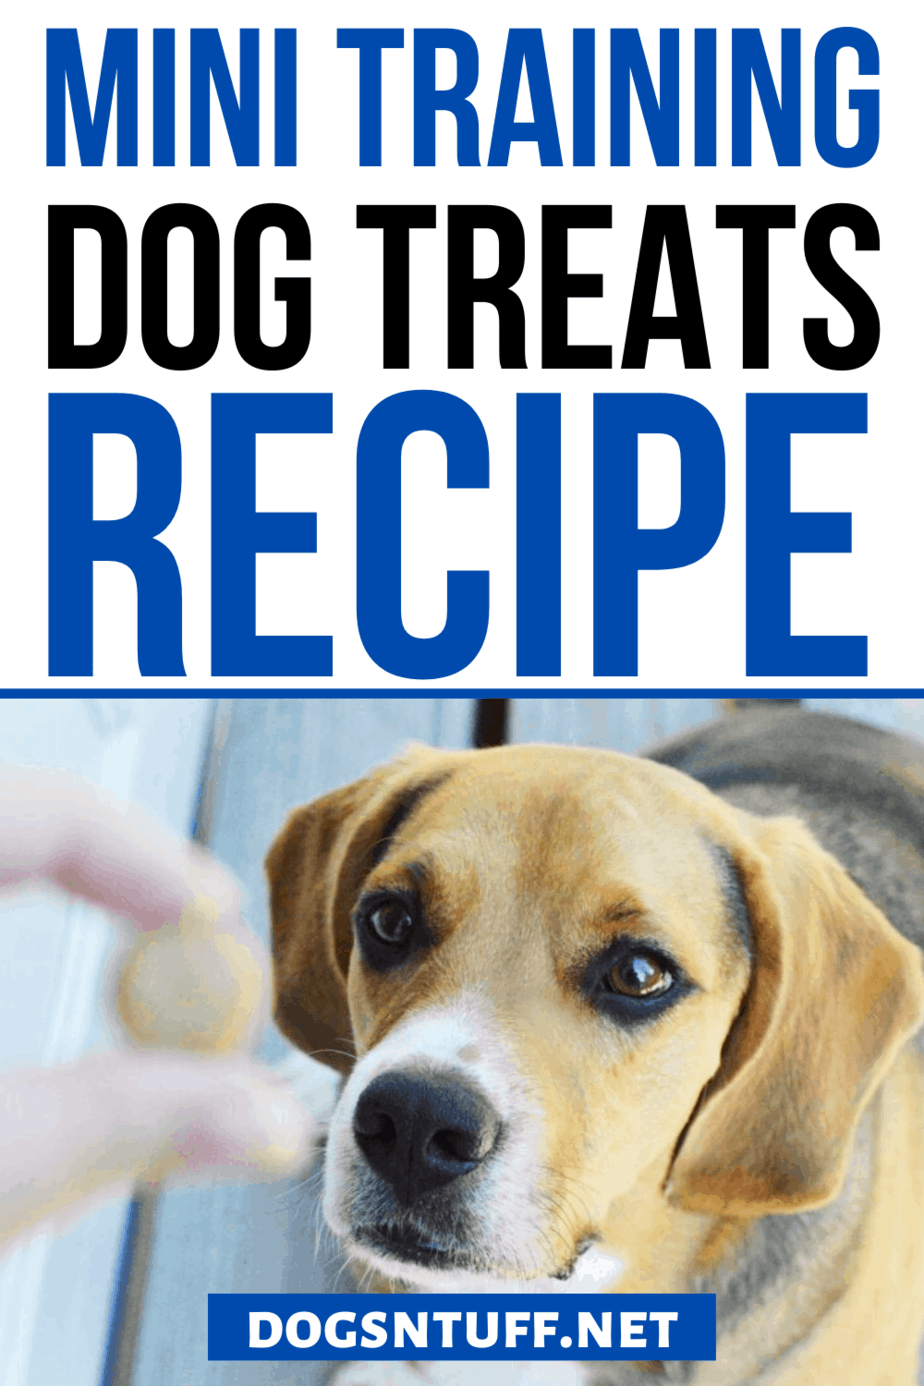 Is Whole-wheat Flour Good for Dogs?